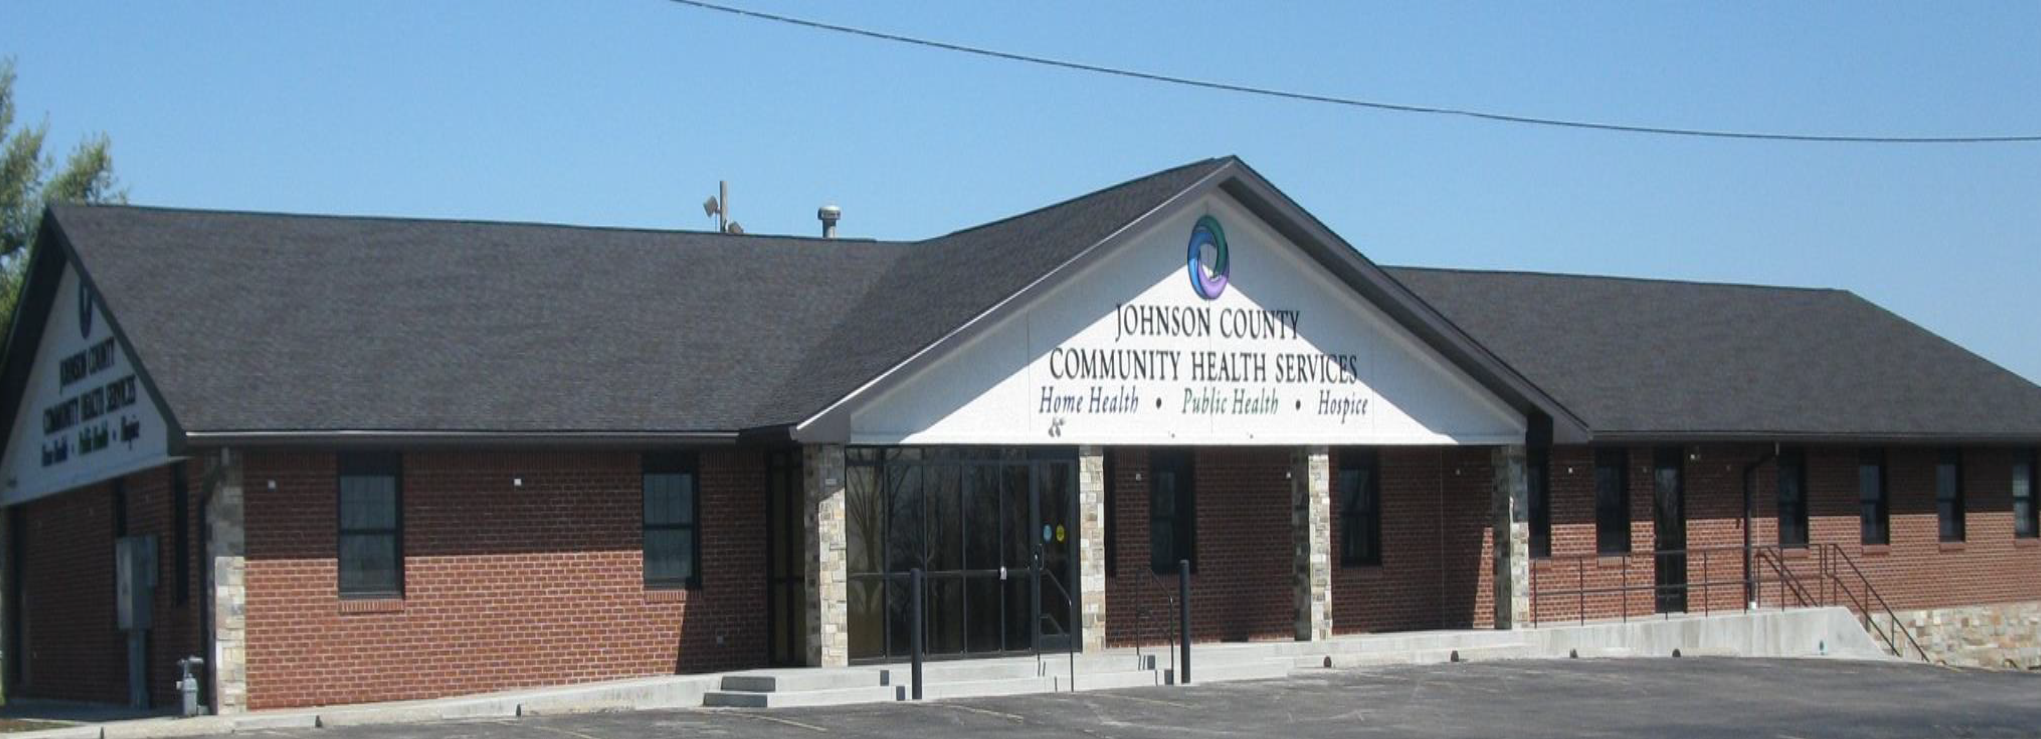 Appointments and Locations - Johnson County Community Health Services